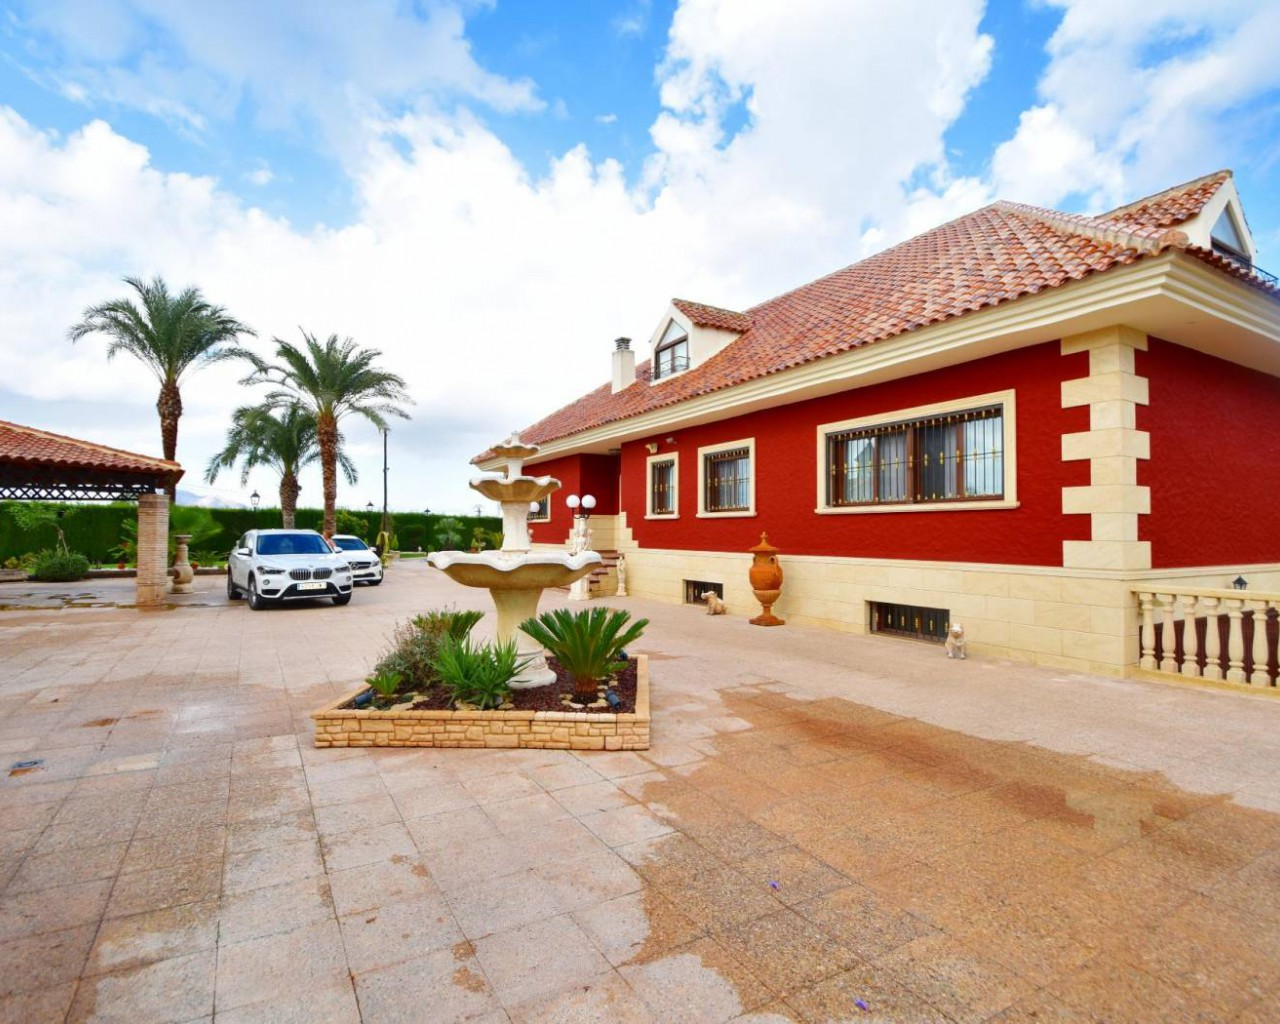 Country Property - Venta - Dolores - Dolores